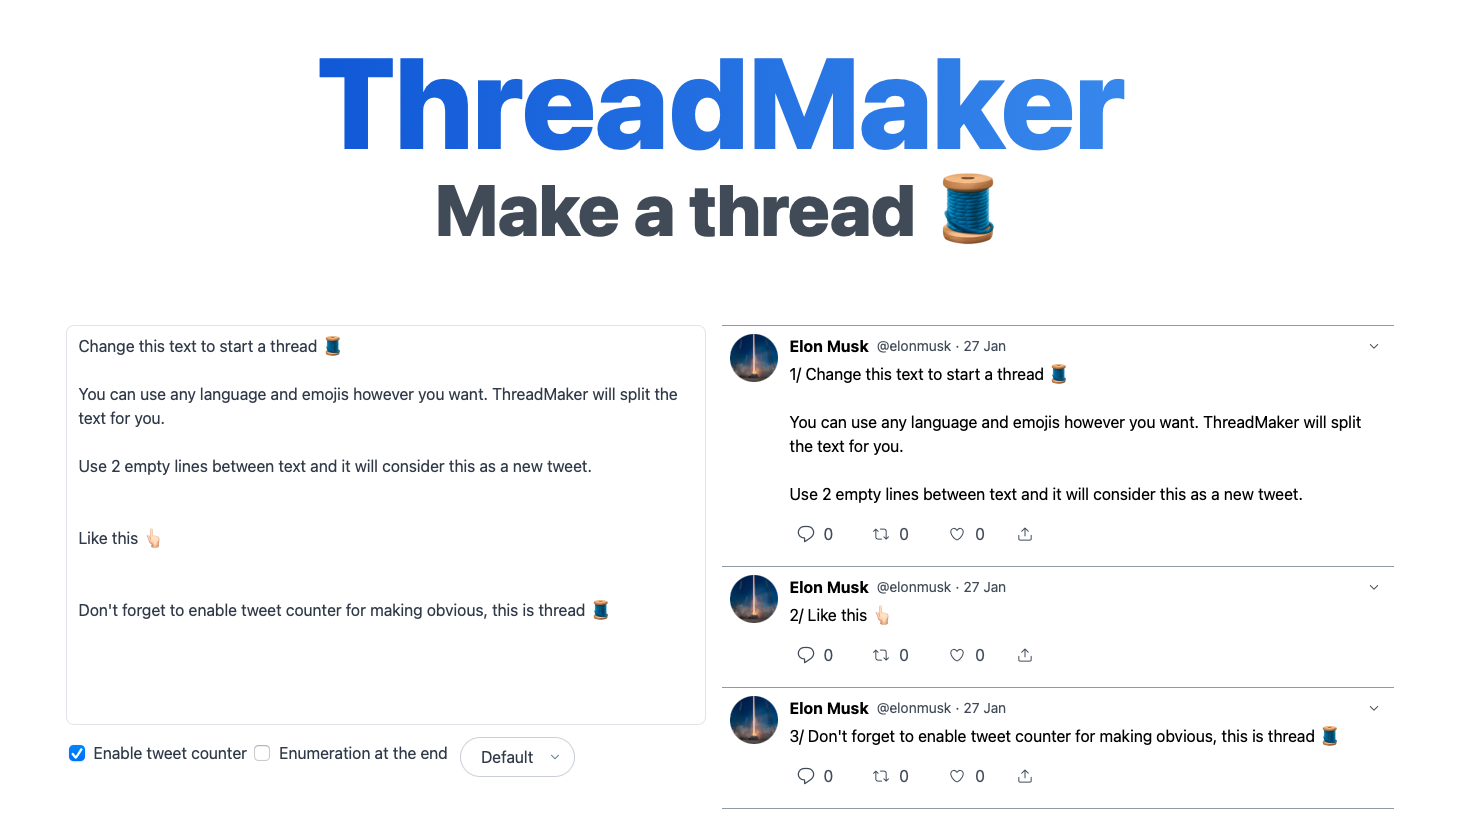 ThreadMaker